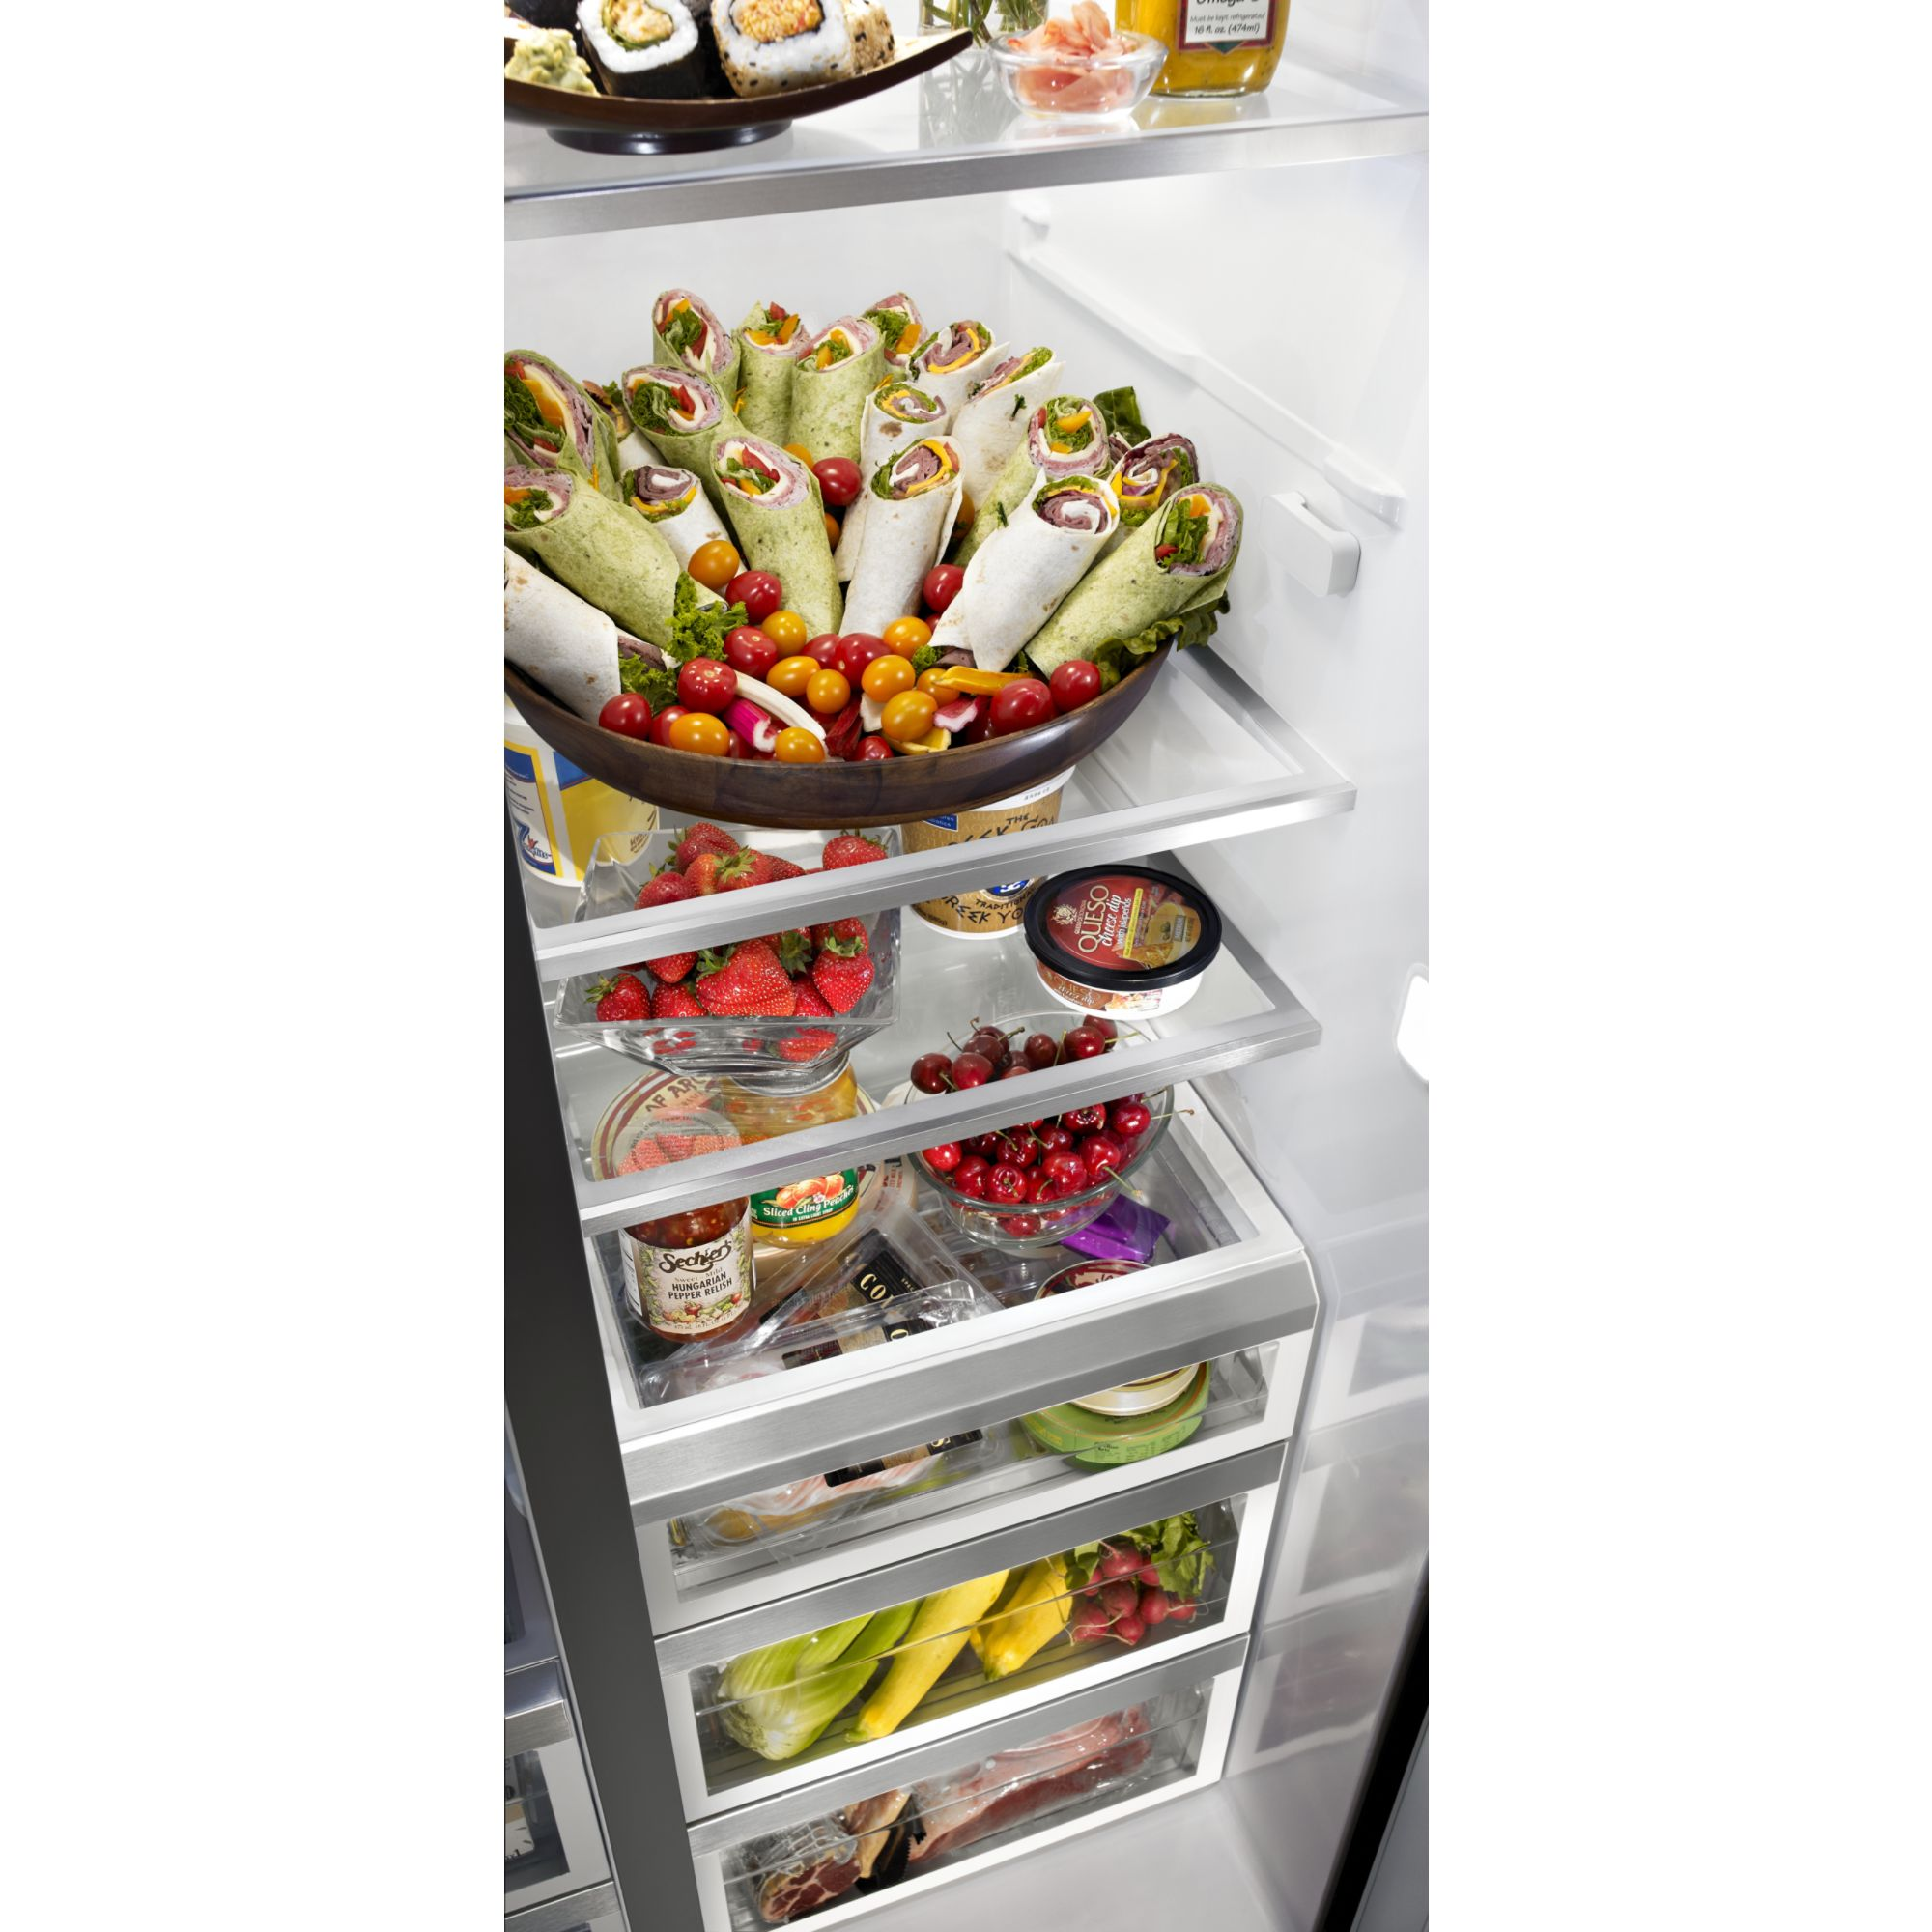 KitchenAid 26.4 cu. ft. Side-by-Side Refrigerator w/ Flush Dispenser Design - Stainless Steel